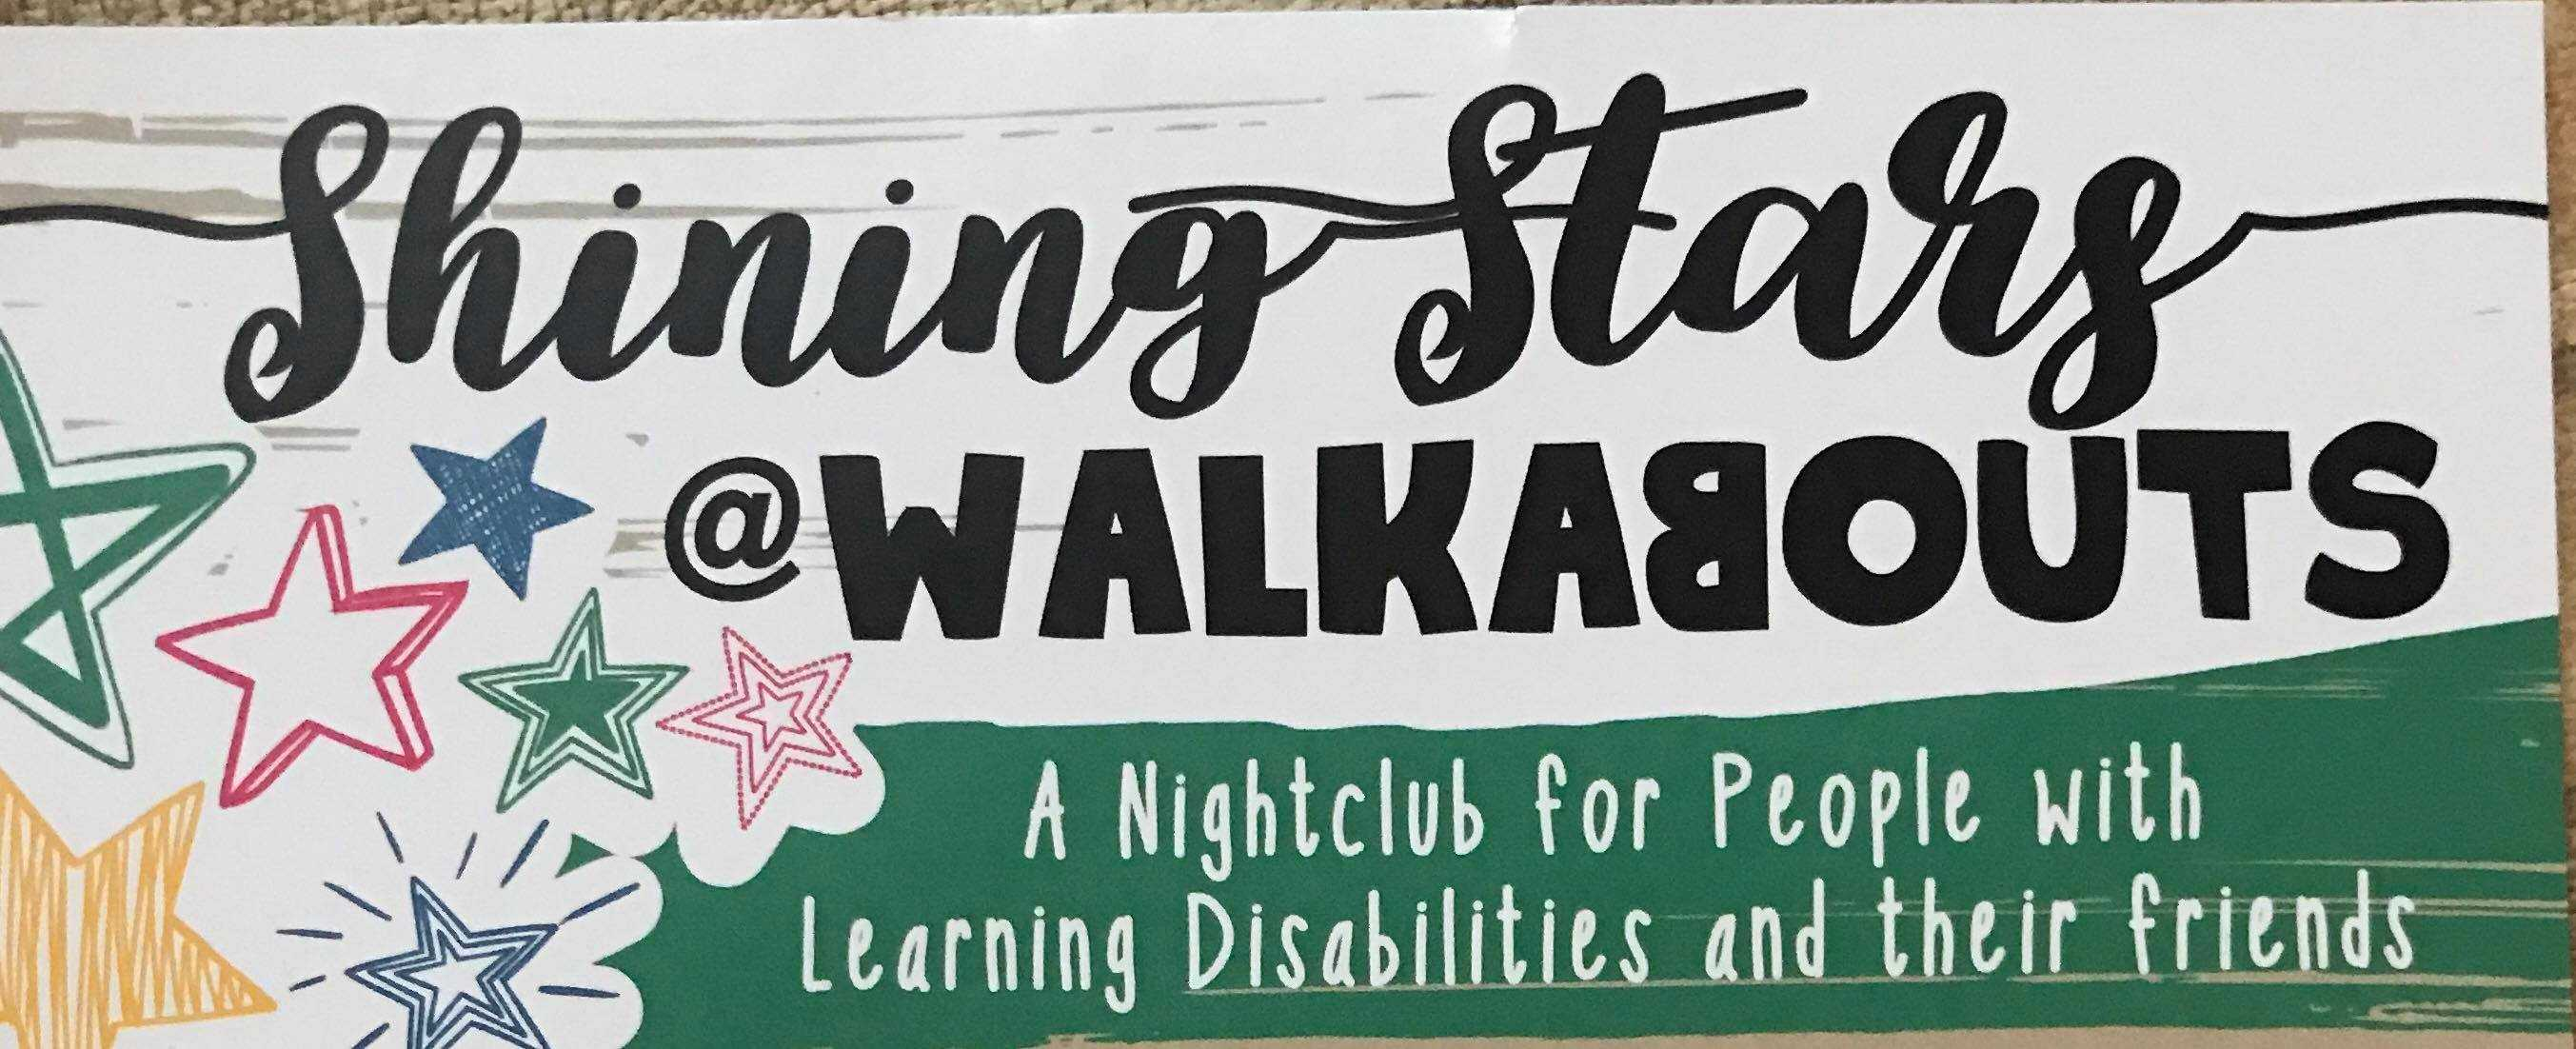 Shining stars at Walkabouts  company logo